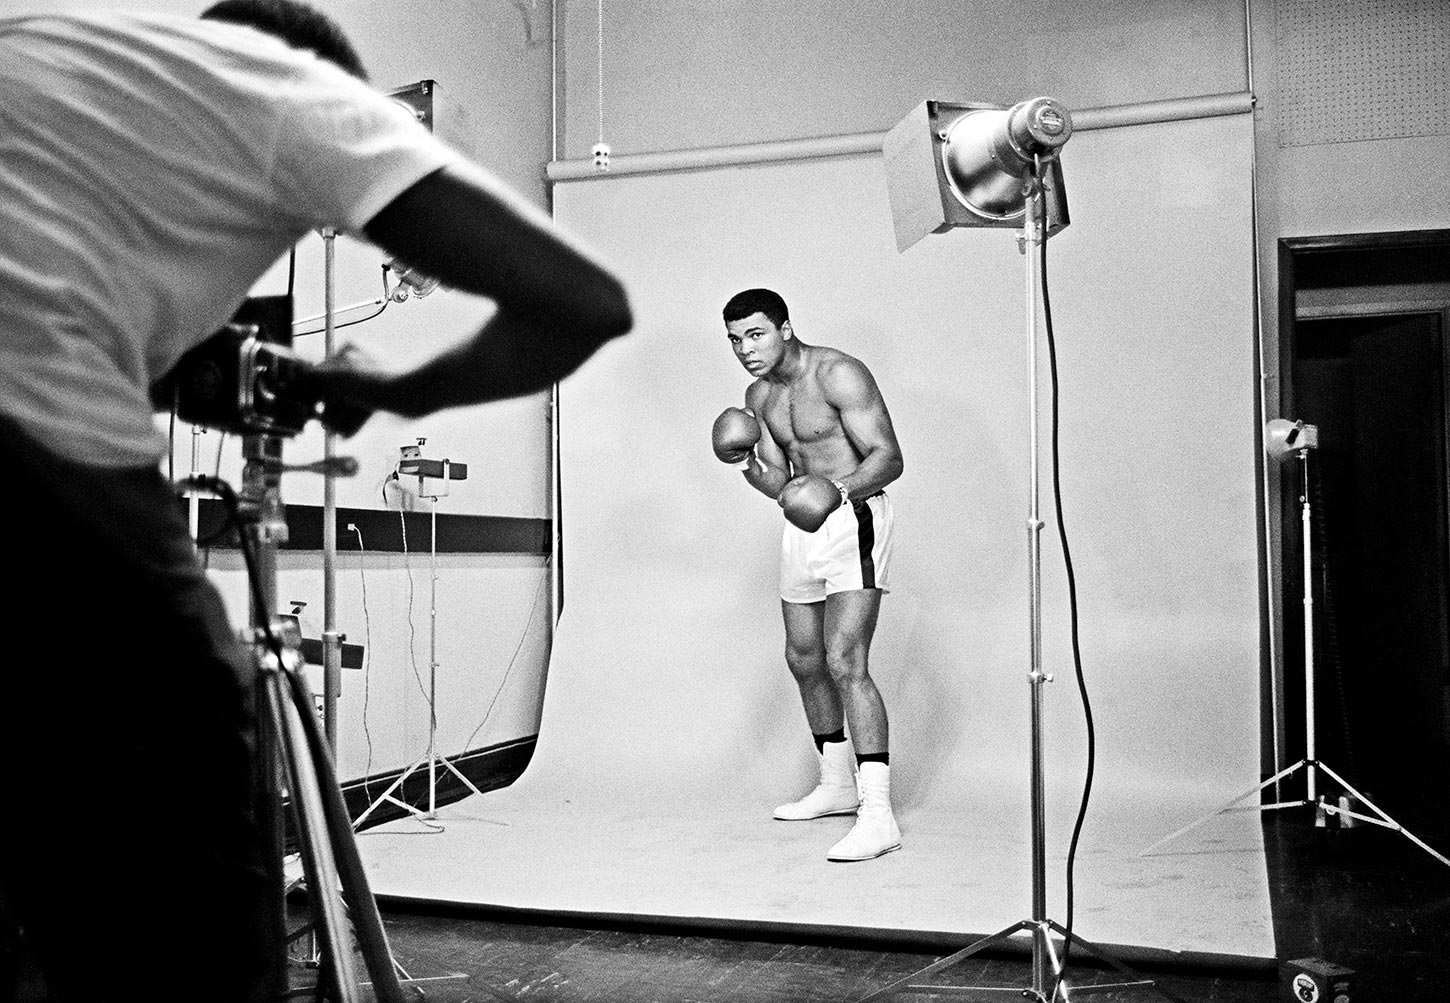 Muhammad Ali in a boxing outfit posing for a studio photographer. Chicago, Illinois. 1966.